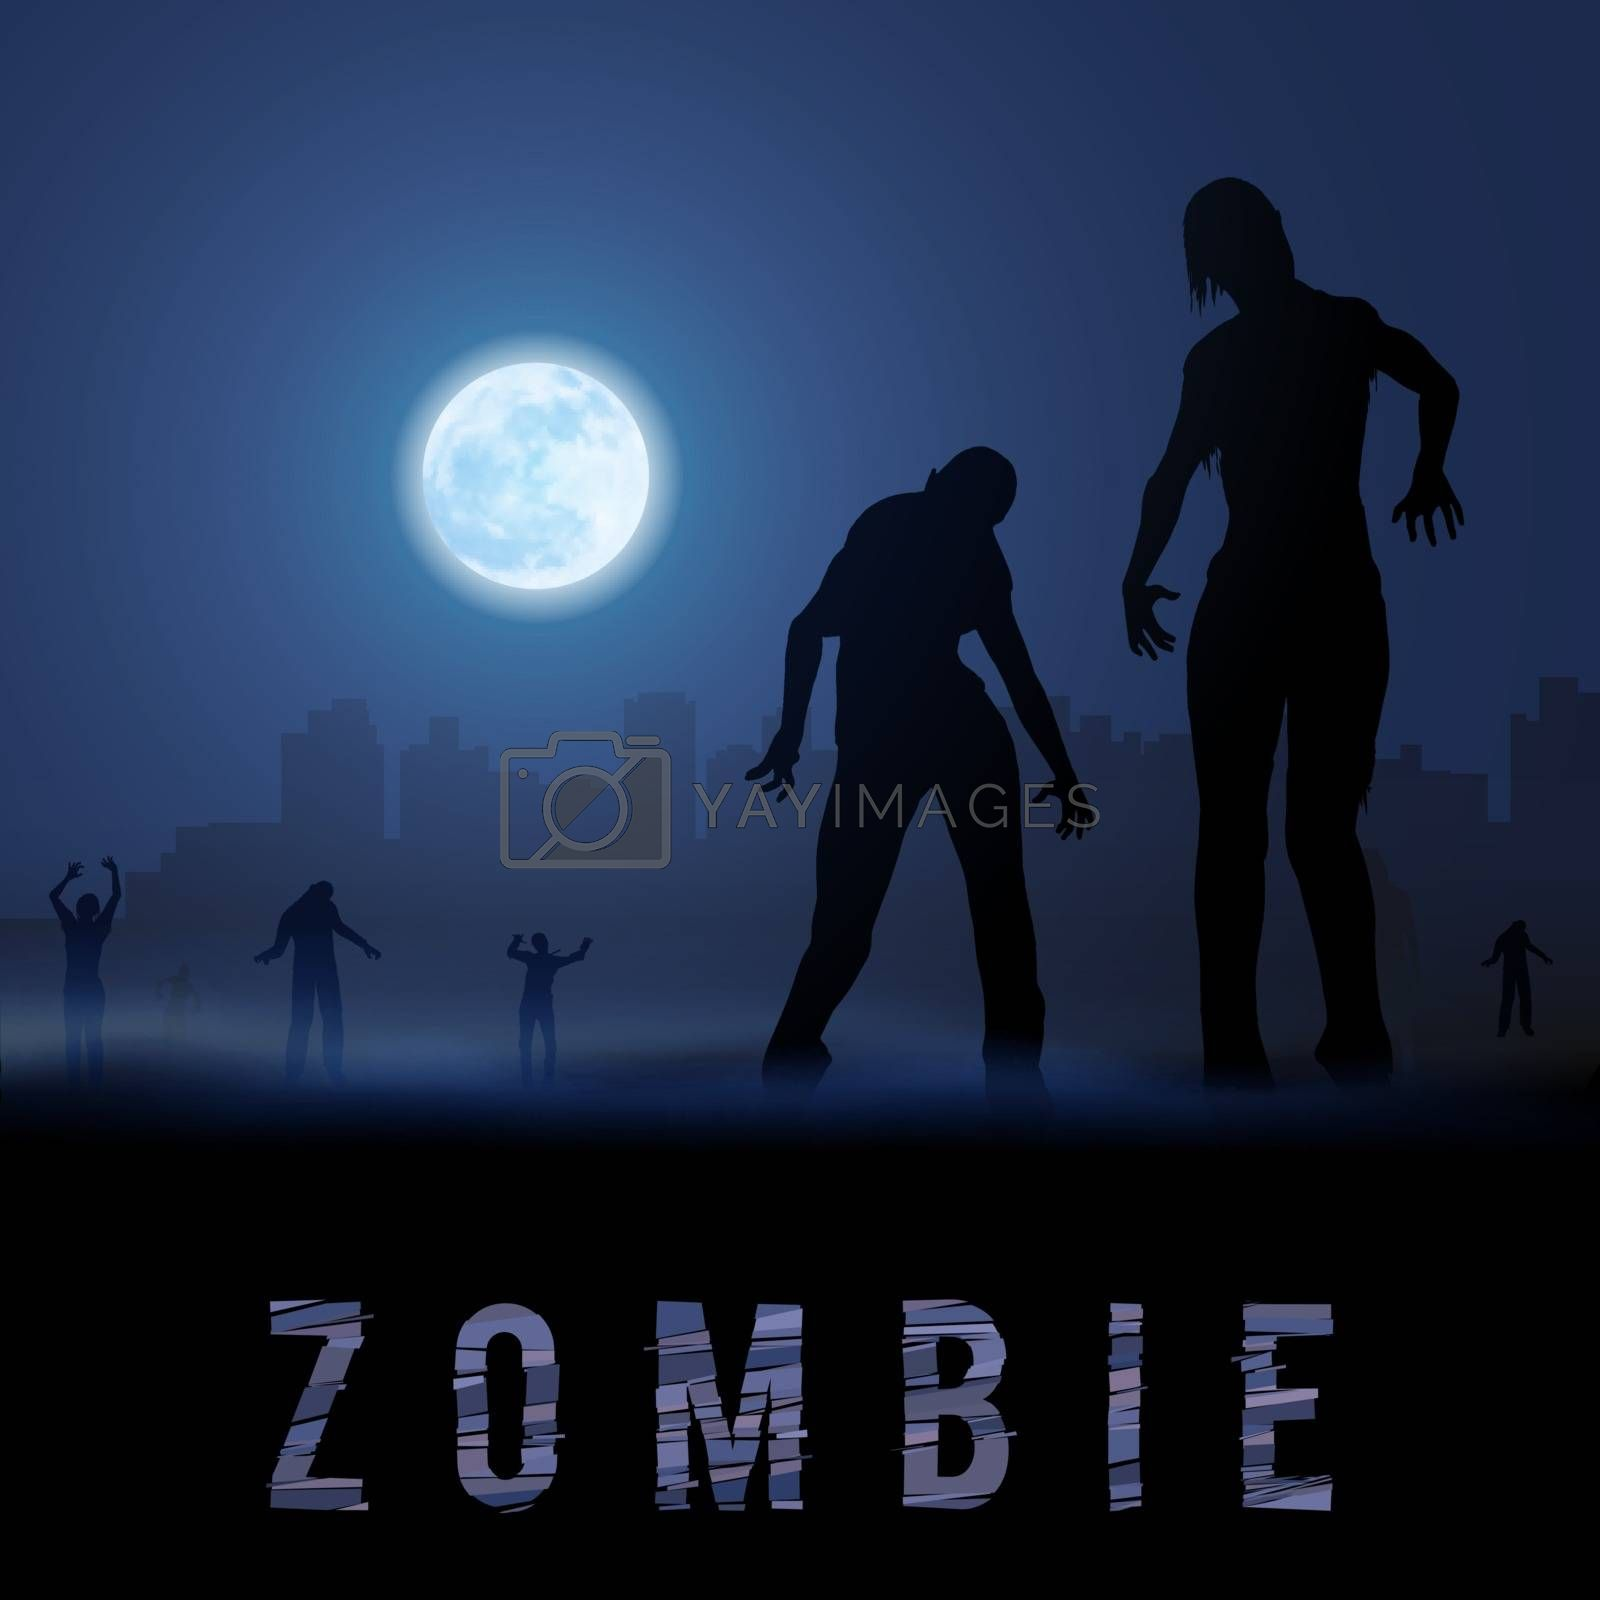 Zombie Walking out From Abandoned City at Night on a Full Moon